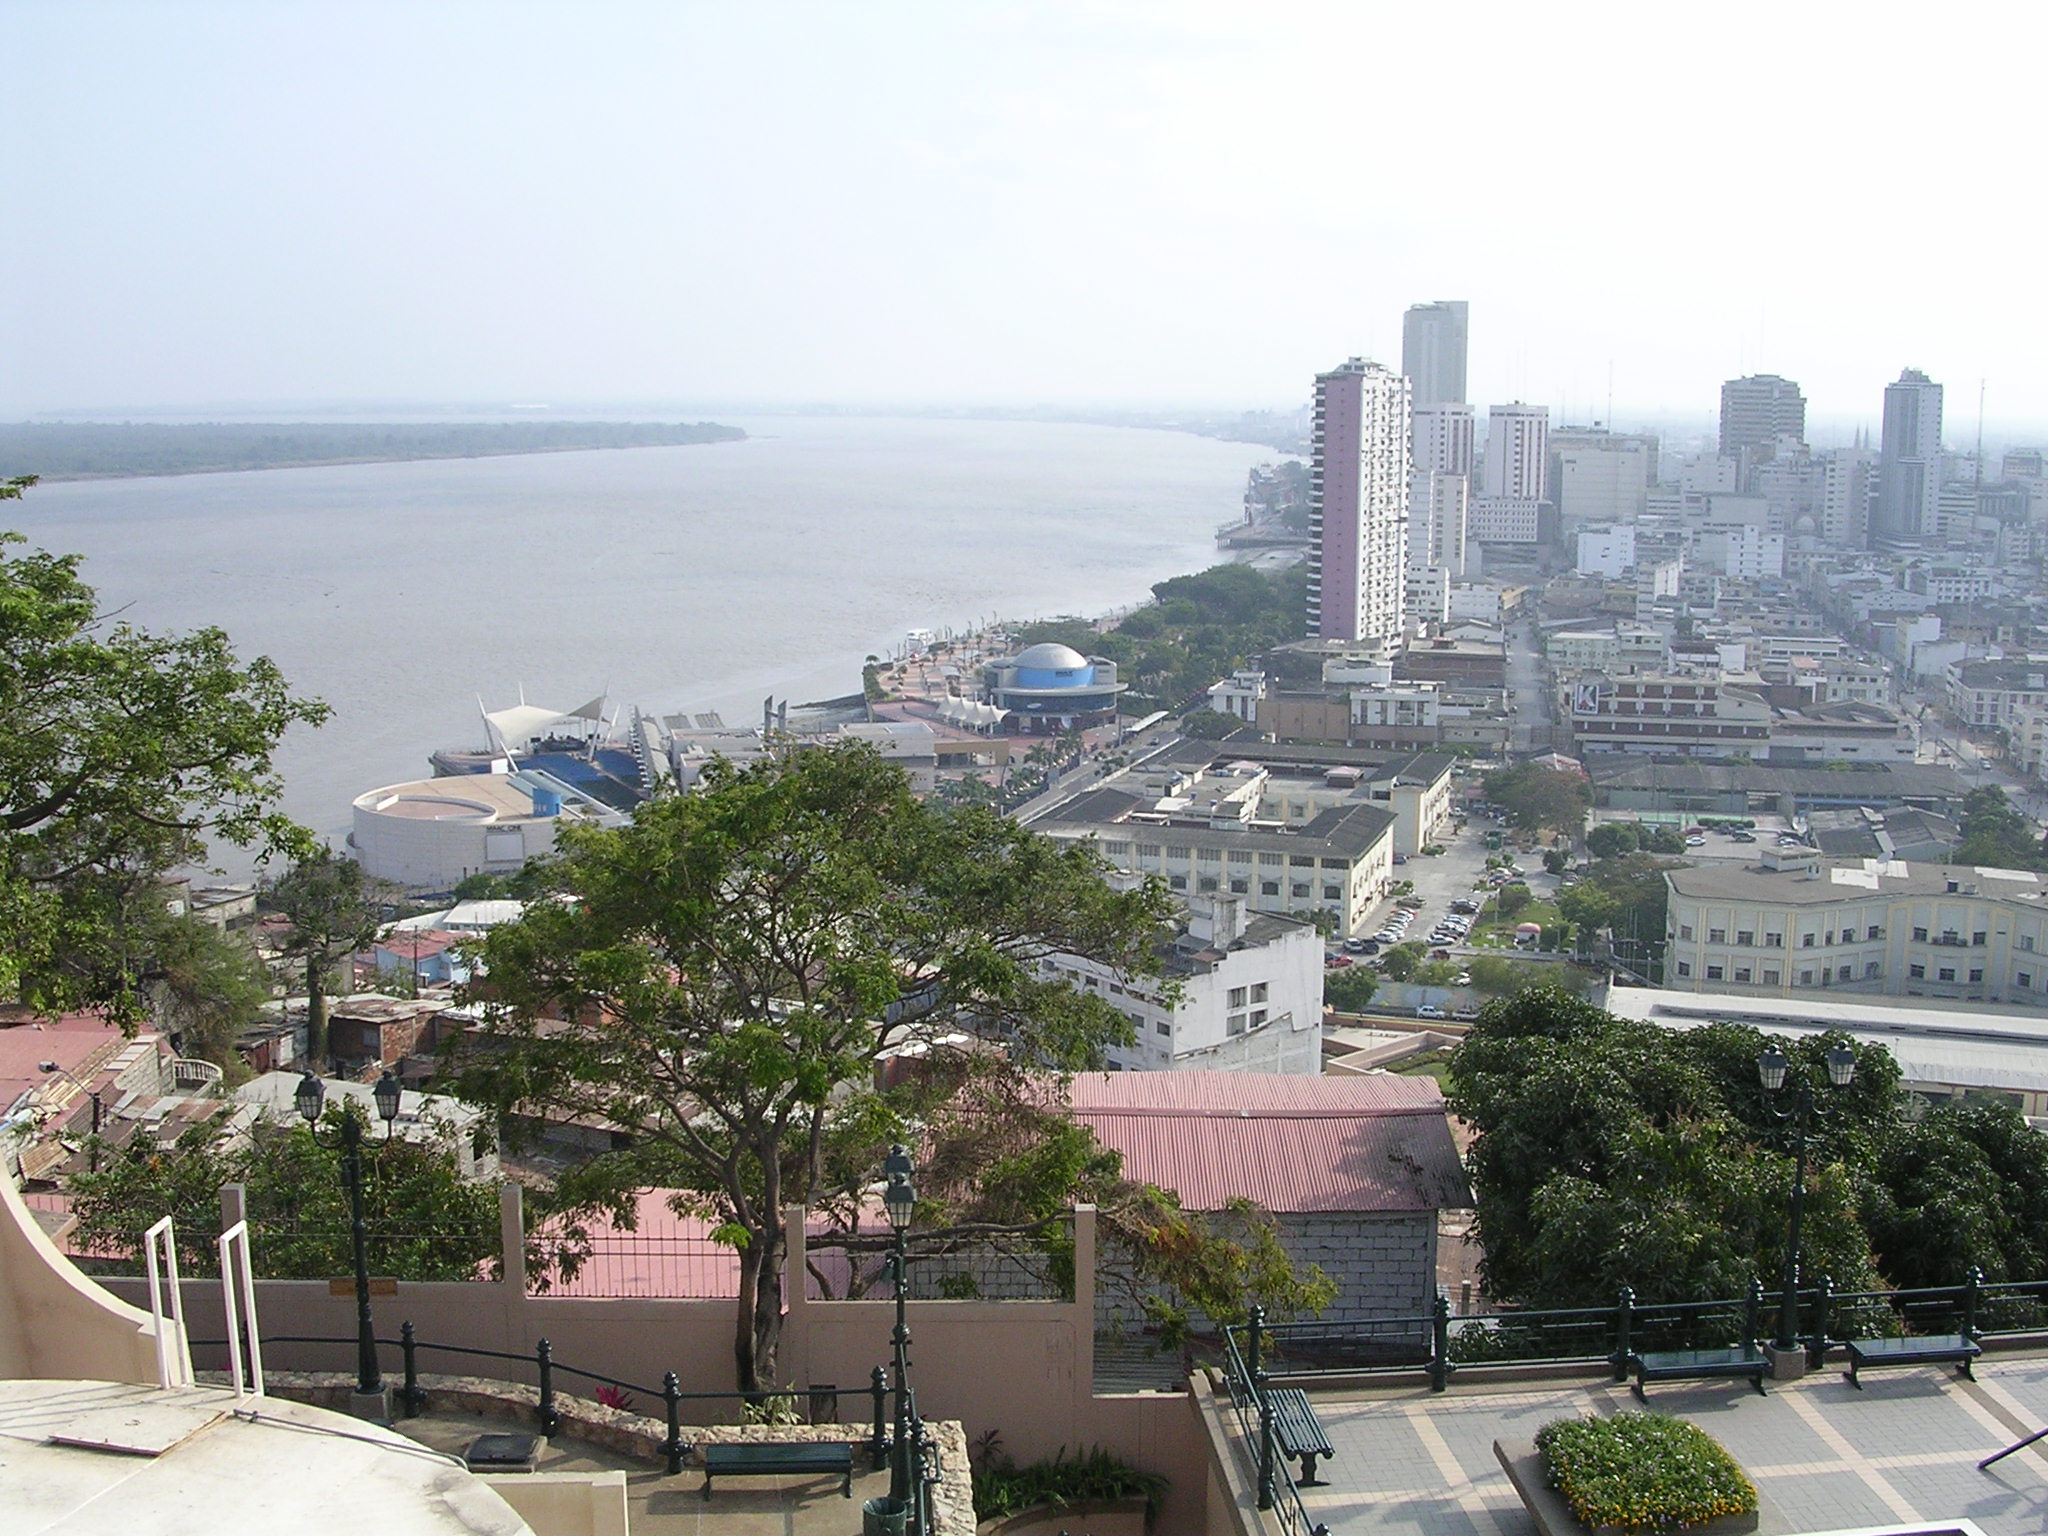 http://upload.wikimedia.org/wikipedia/commons/8/81/Guayas_from_Santa_Ana.JPG